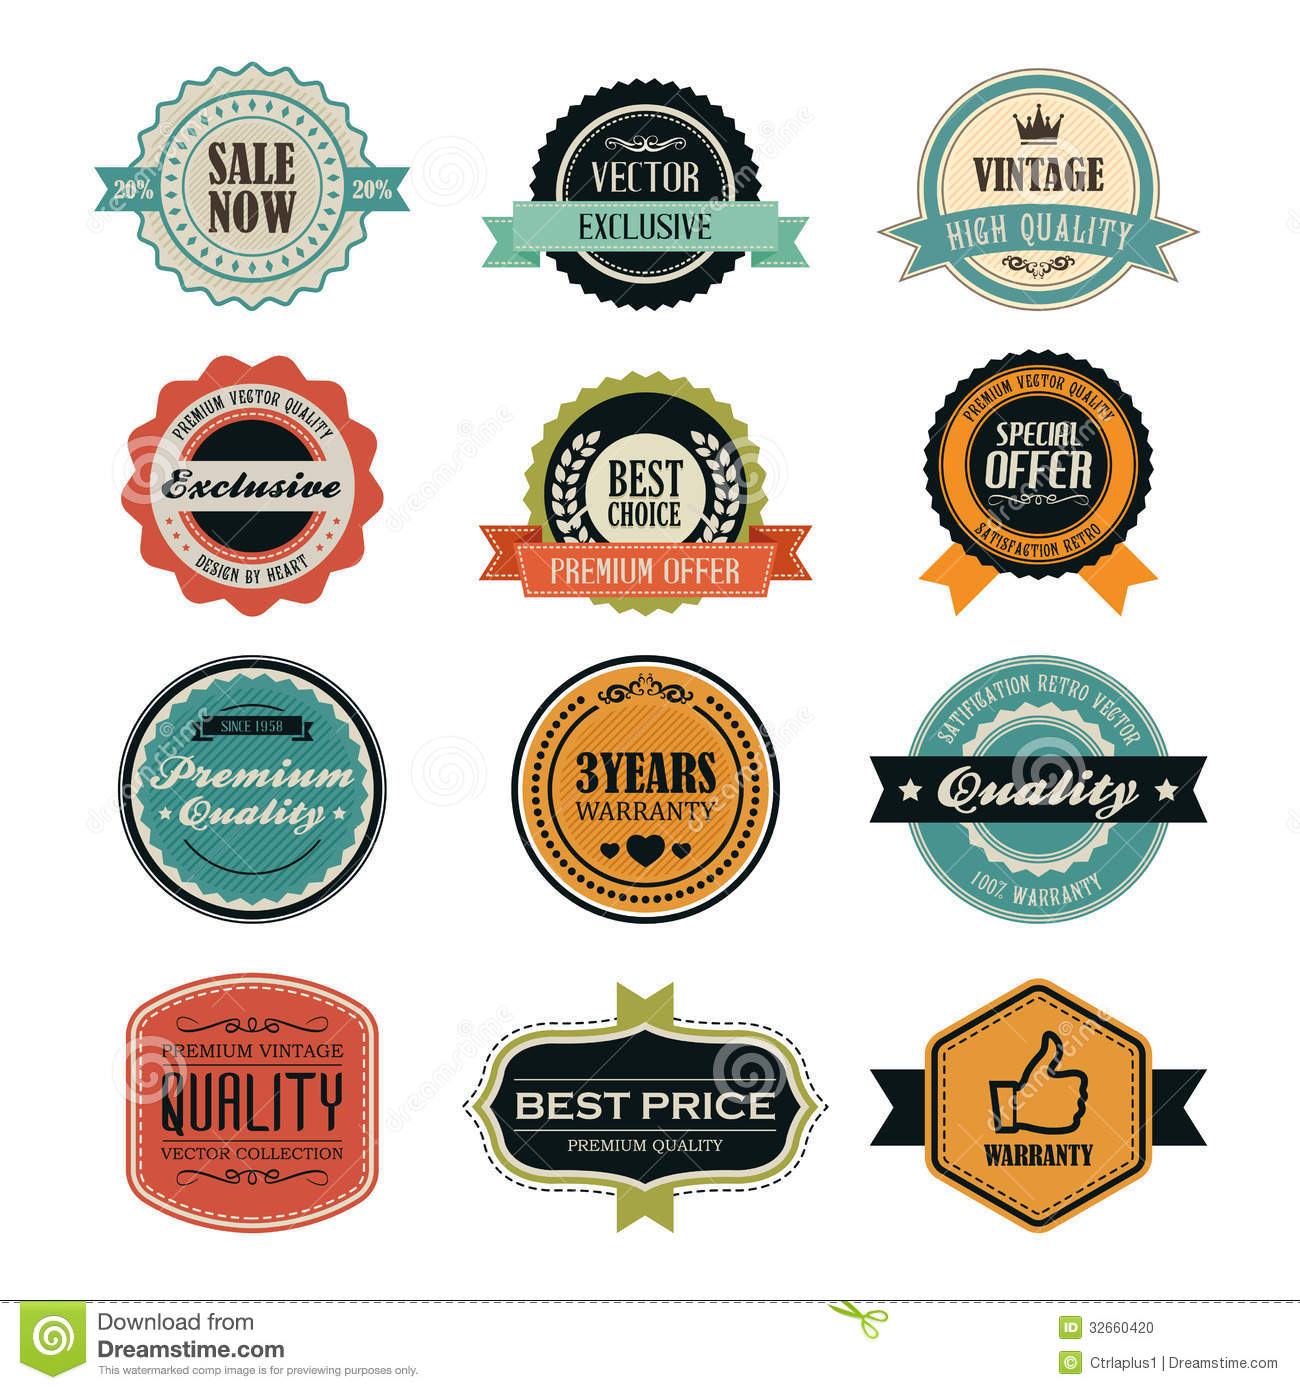 Classic Retro Illustration: Set Of Retro Vintage Badges And Labels Stock Photo